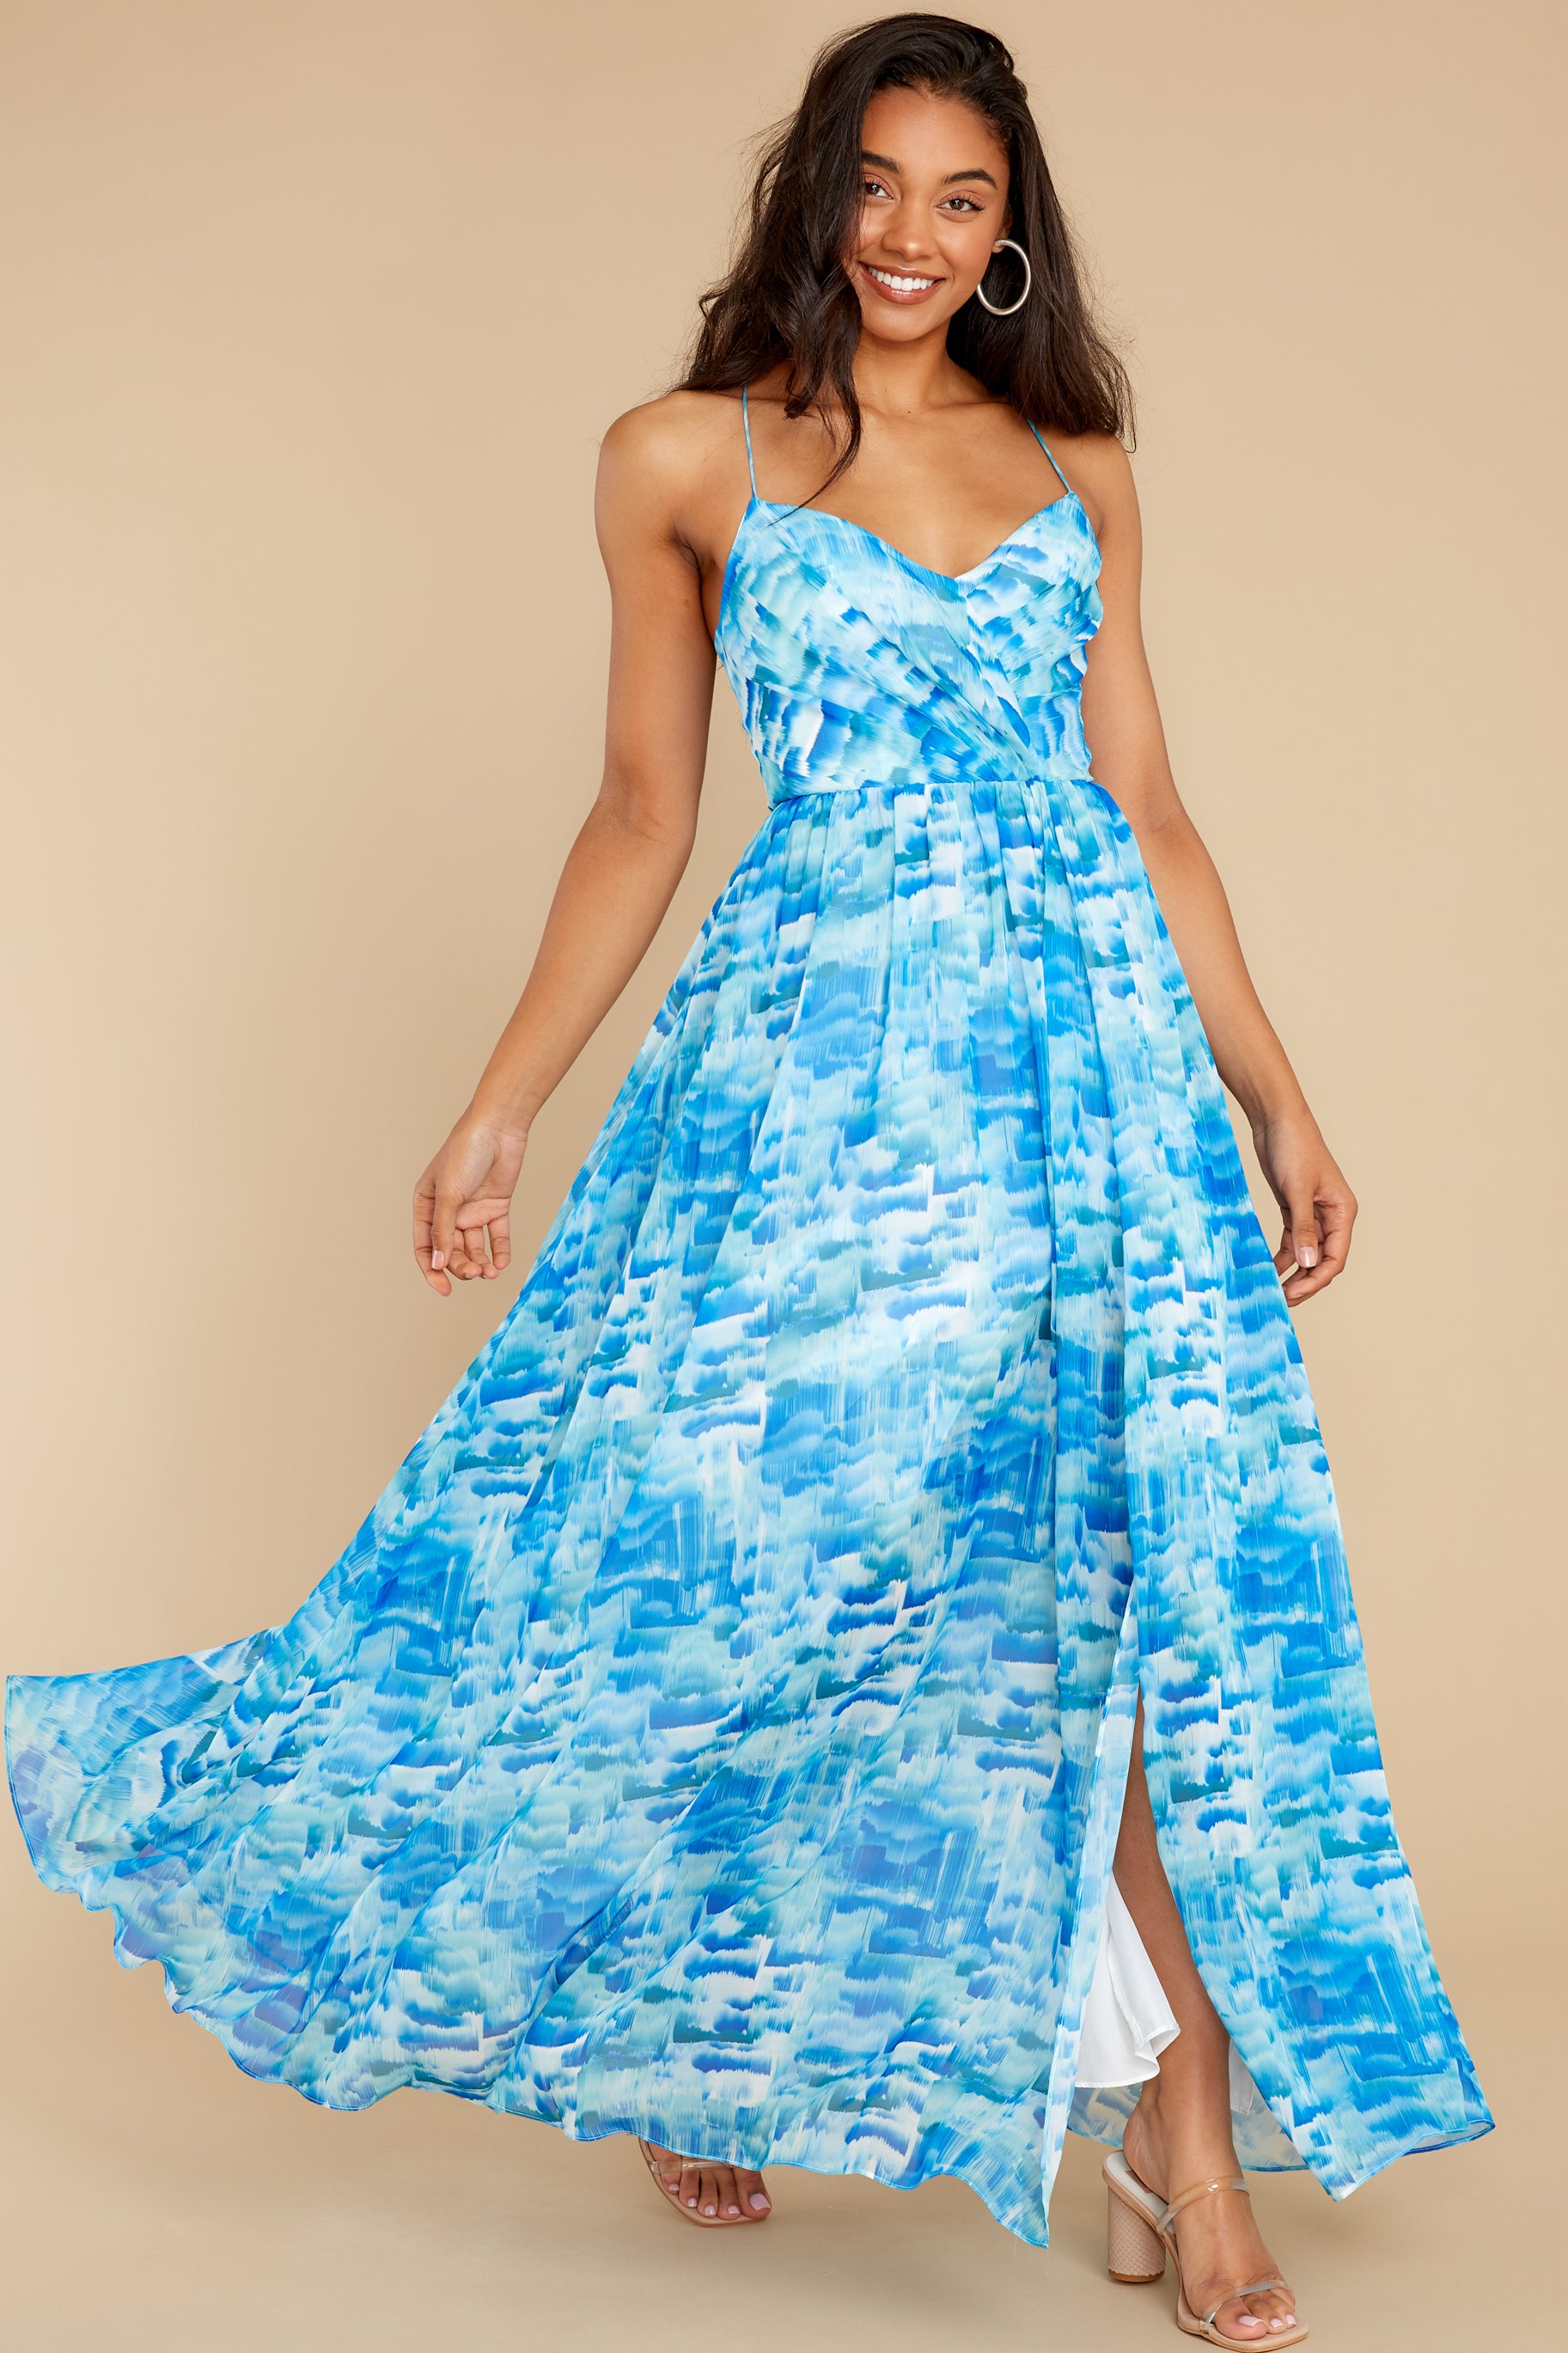 5 Not to Mention Blue Multi Maxi Dress at reddress.com